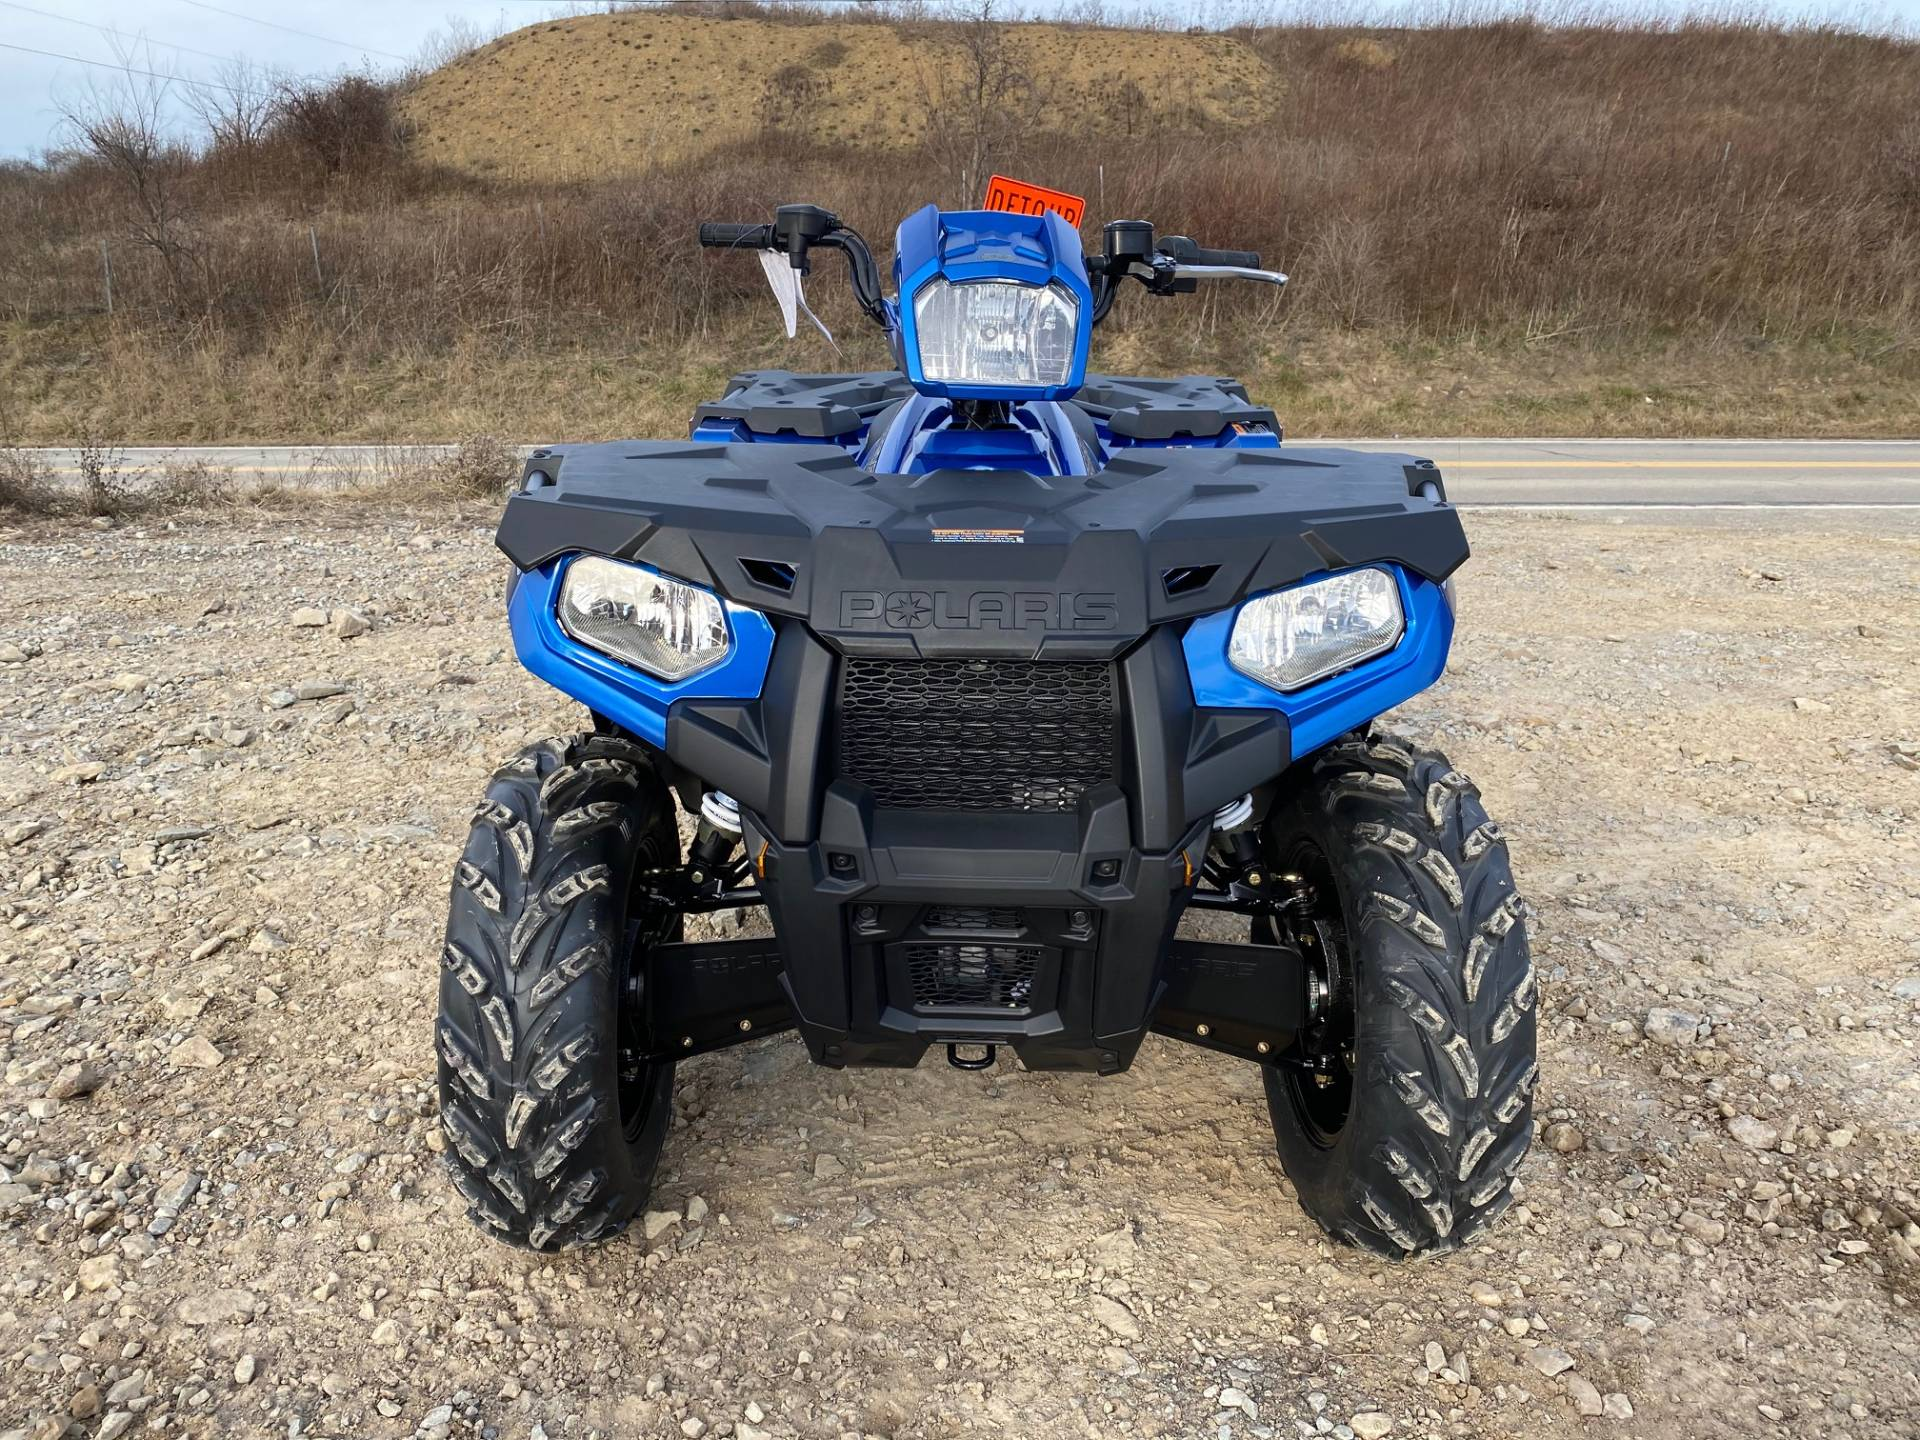 2020 Polaris Sportsman 570 Premium in Claysville, Pennsylvania - Photo 2